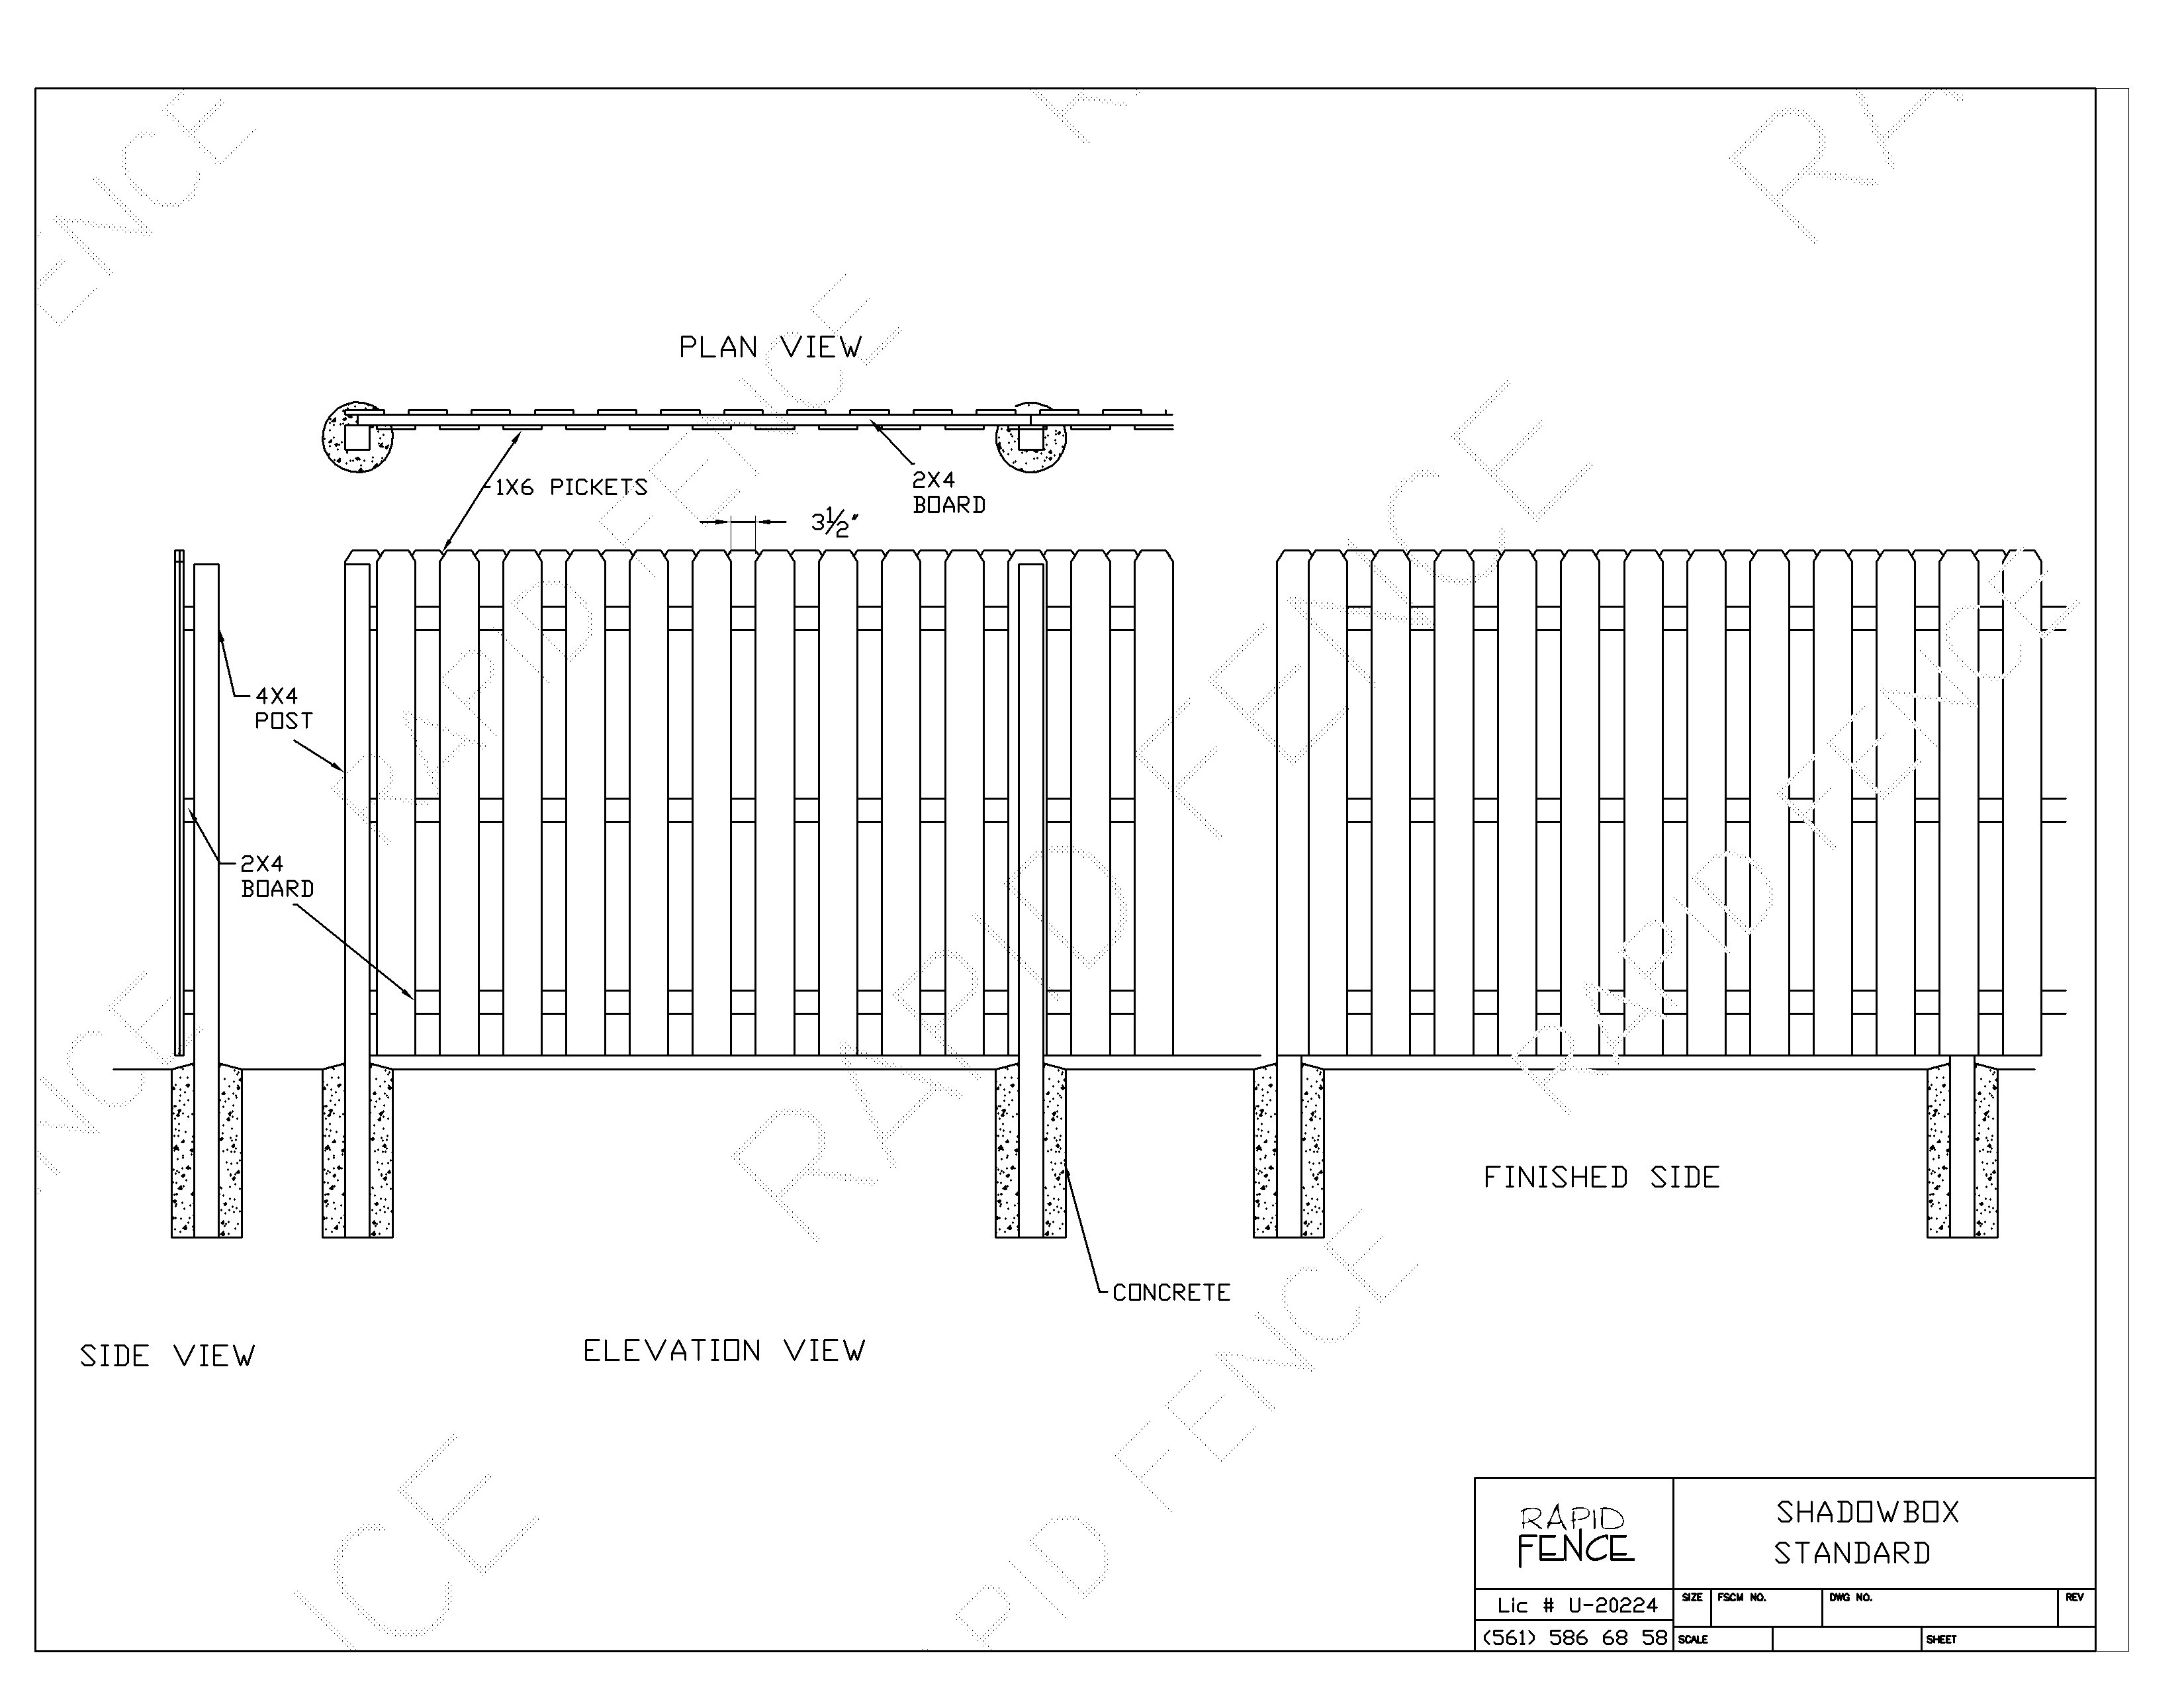 How To Build A Shadow Box Fence